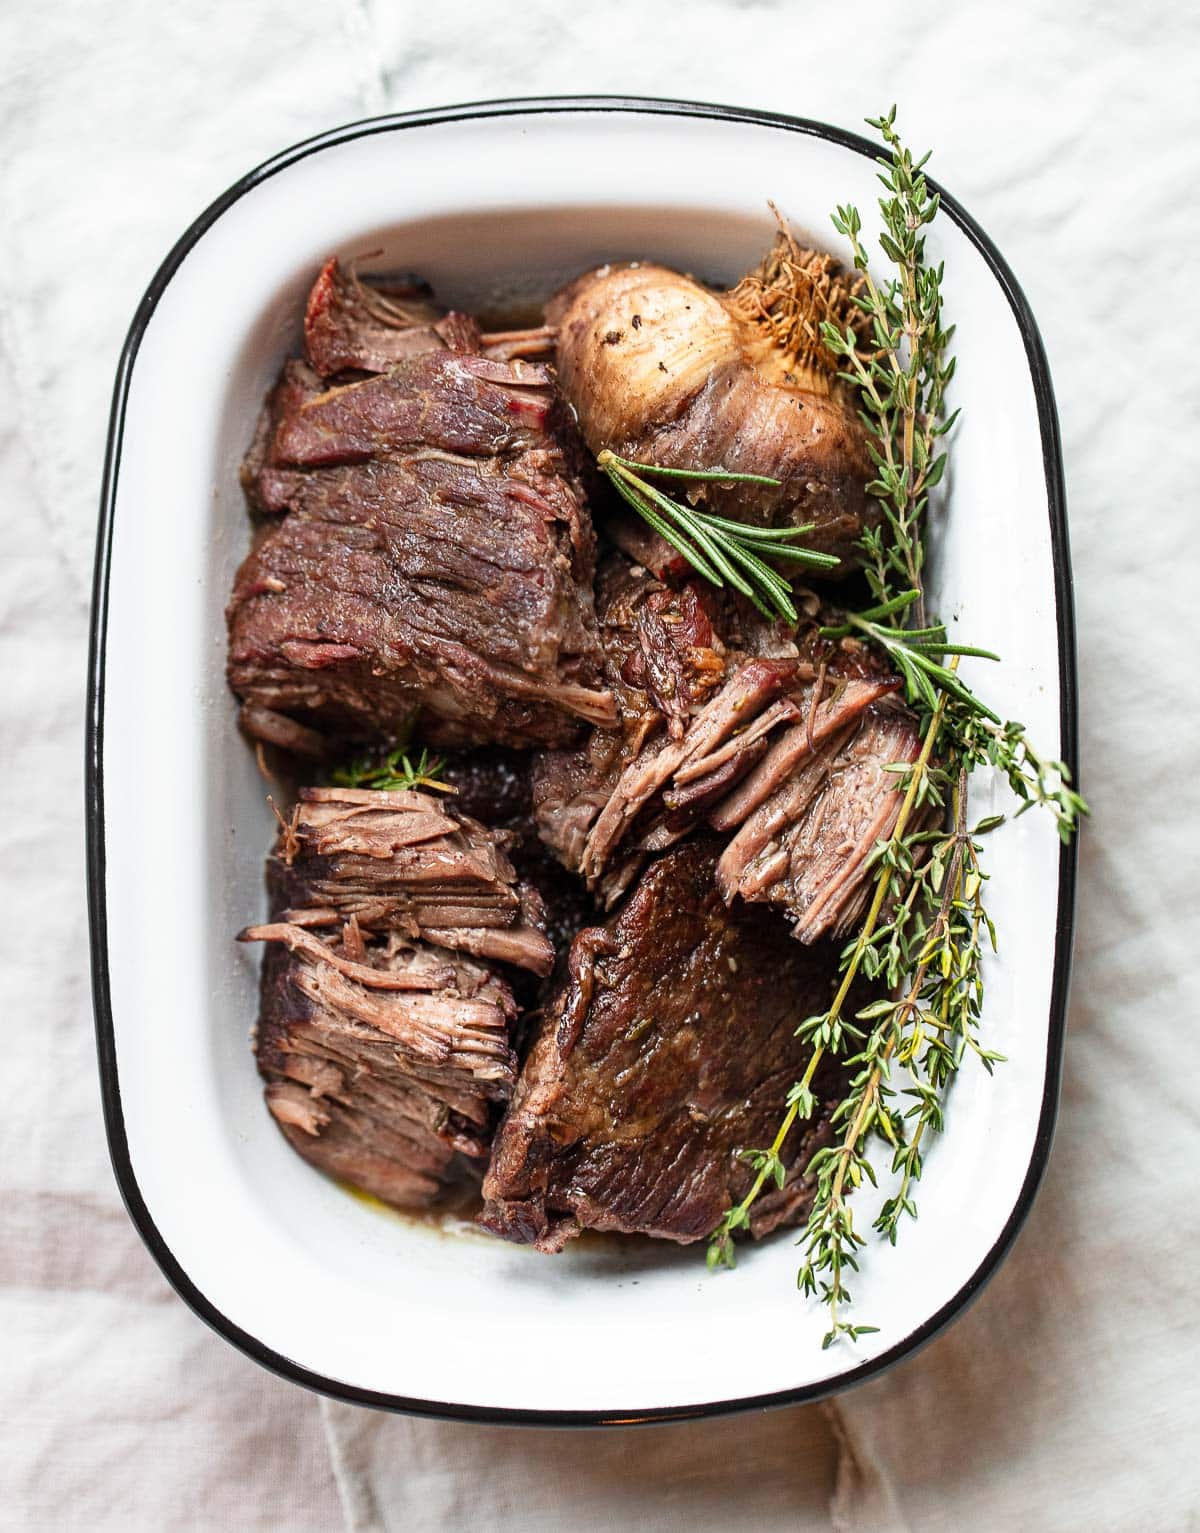 Chunks of braised beef short ribs in a white enamel baking pan, garnished with garlic, fresh thyme and rosemary sprigs.